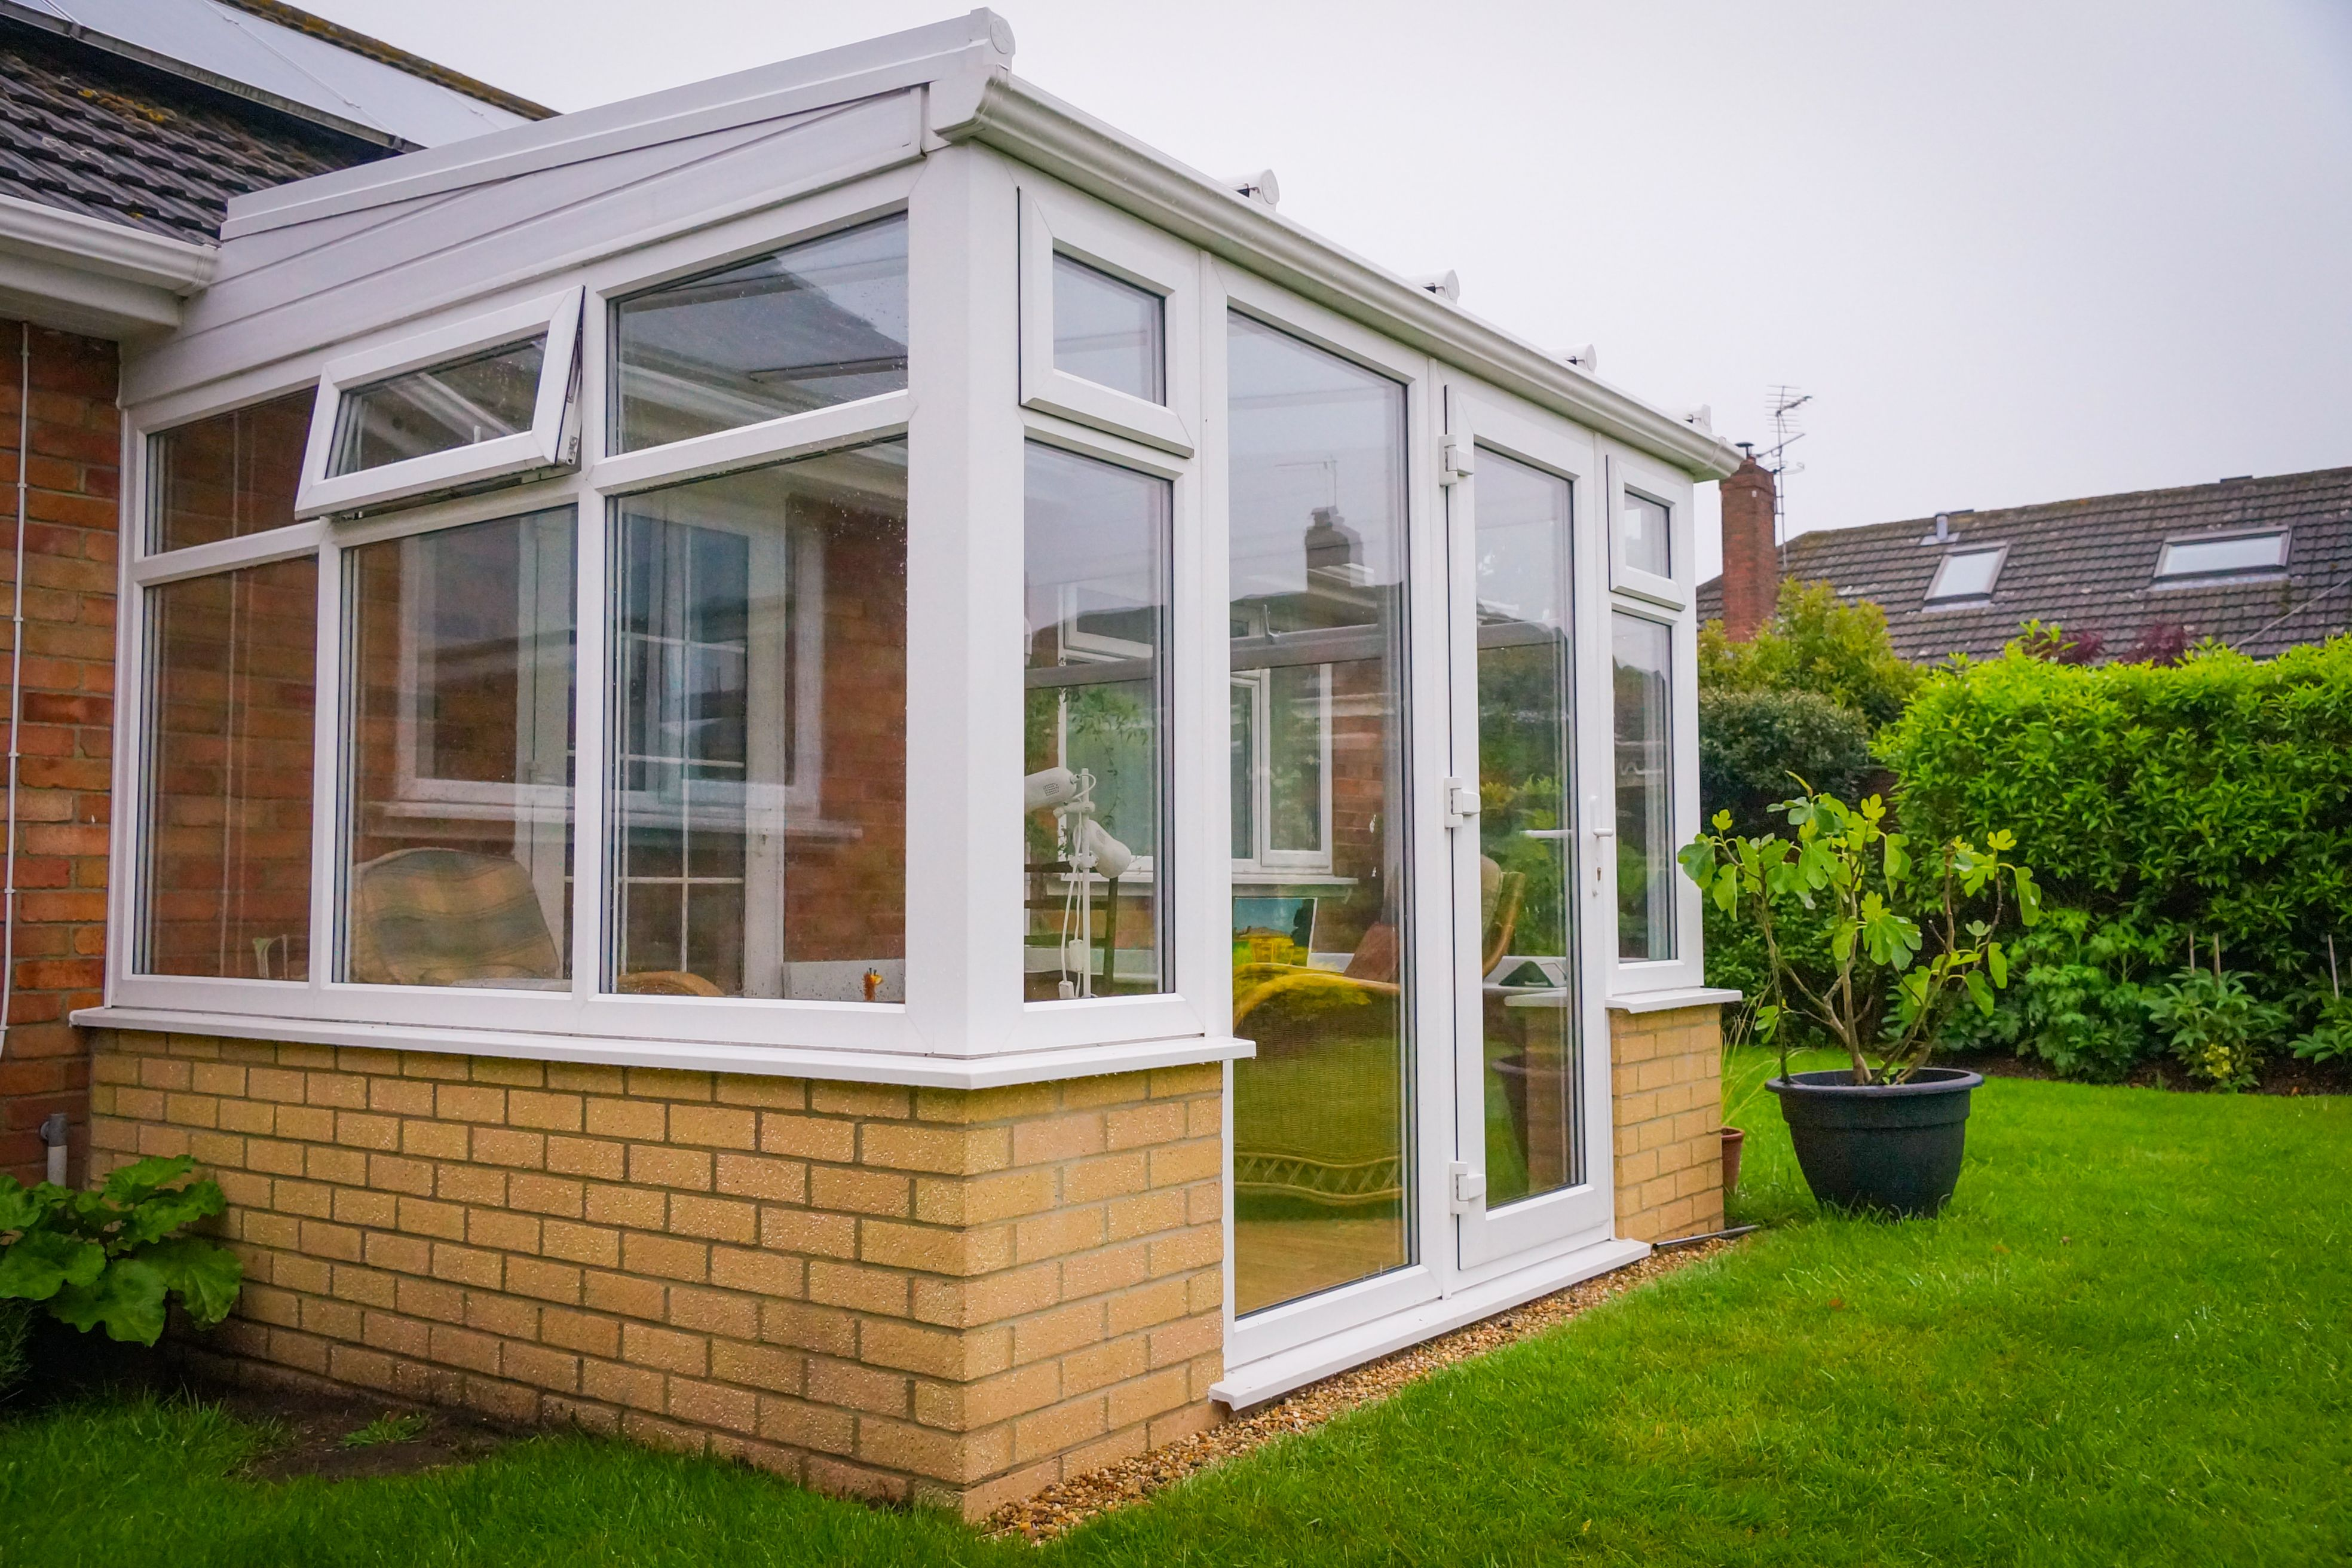 Simple Yet Effective Lean To Conservatory Project In Sprowston Norfolk Conservatory Design Lean To Conservatory Lean To